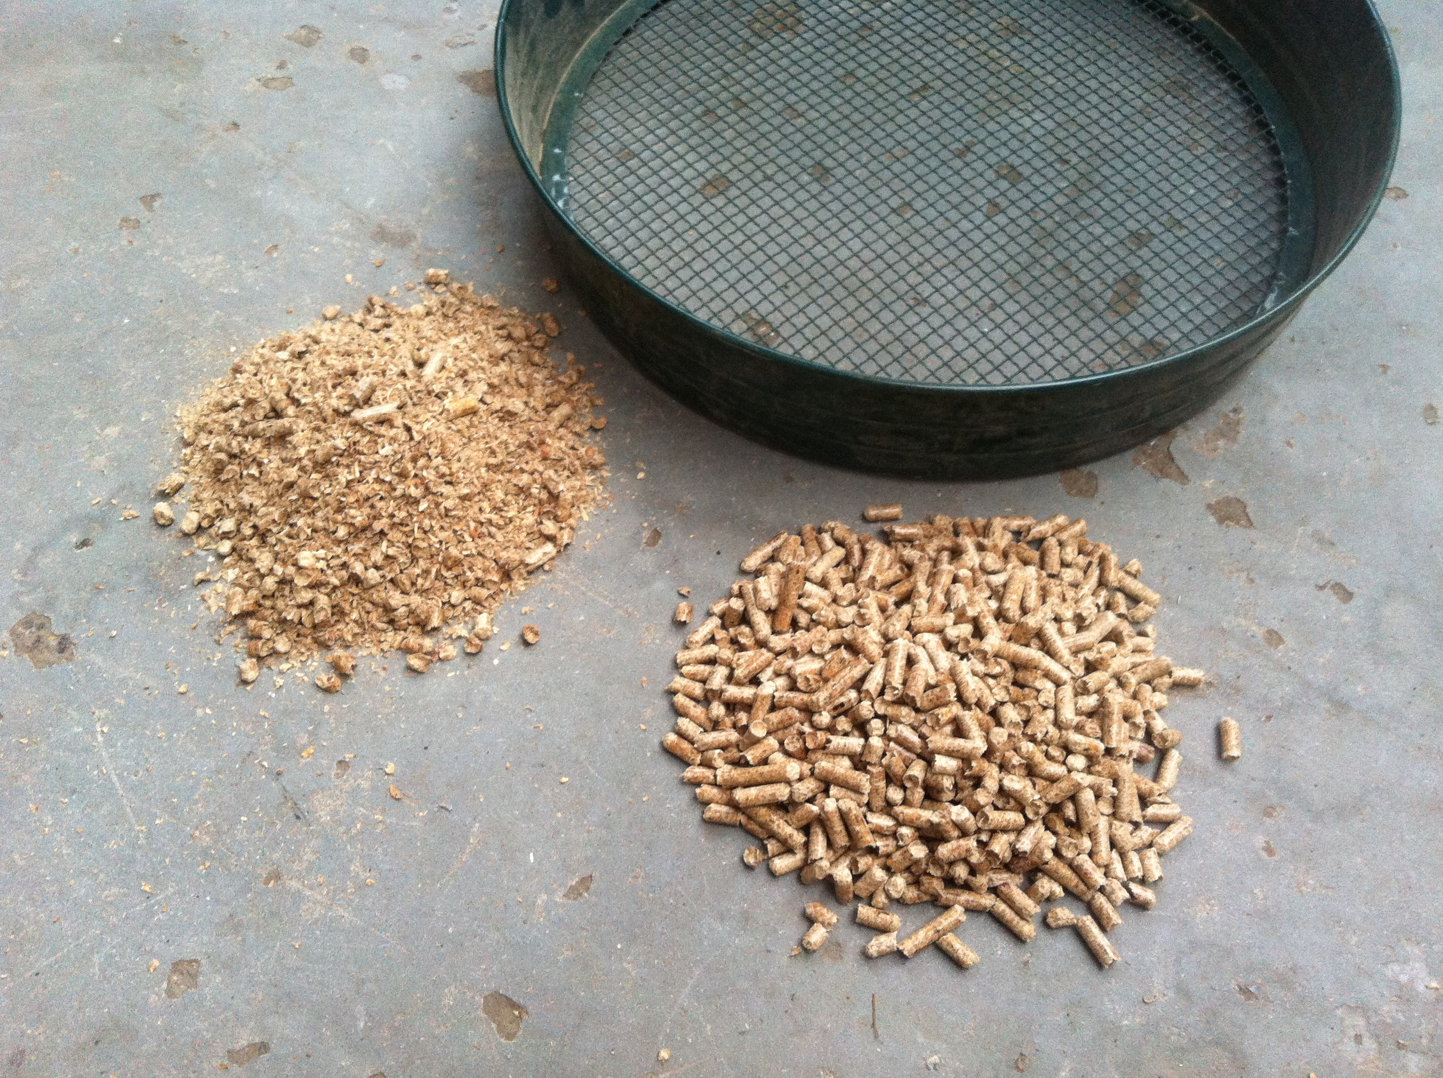 Pellets and riddle